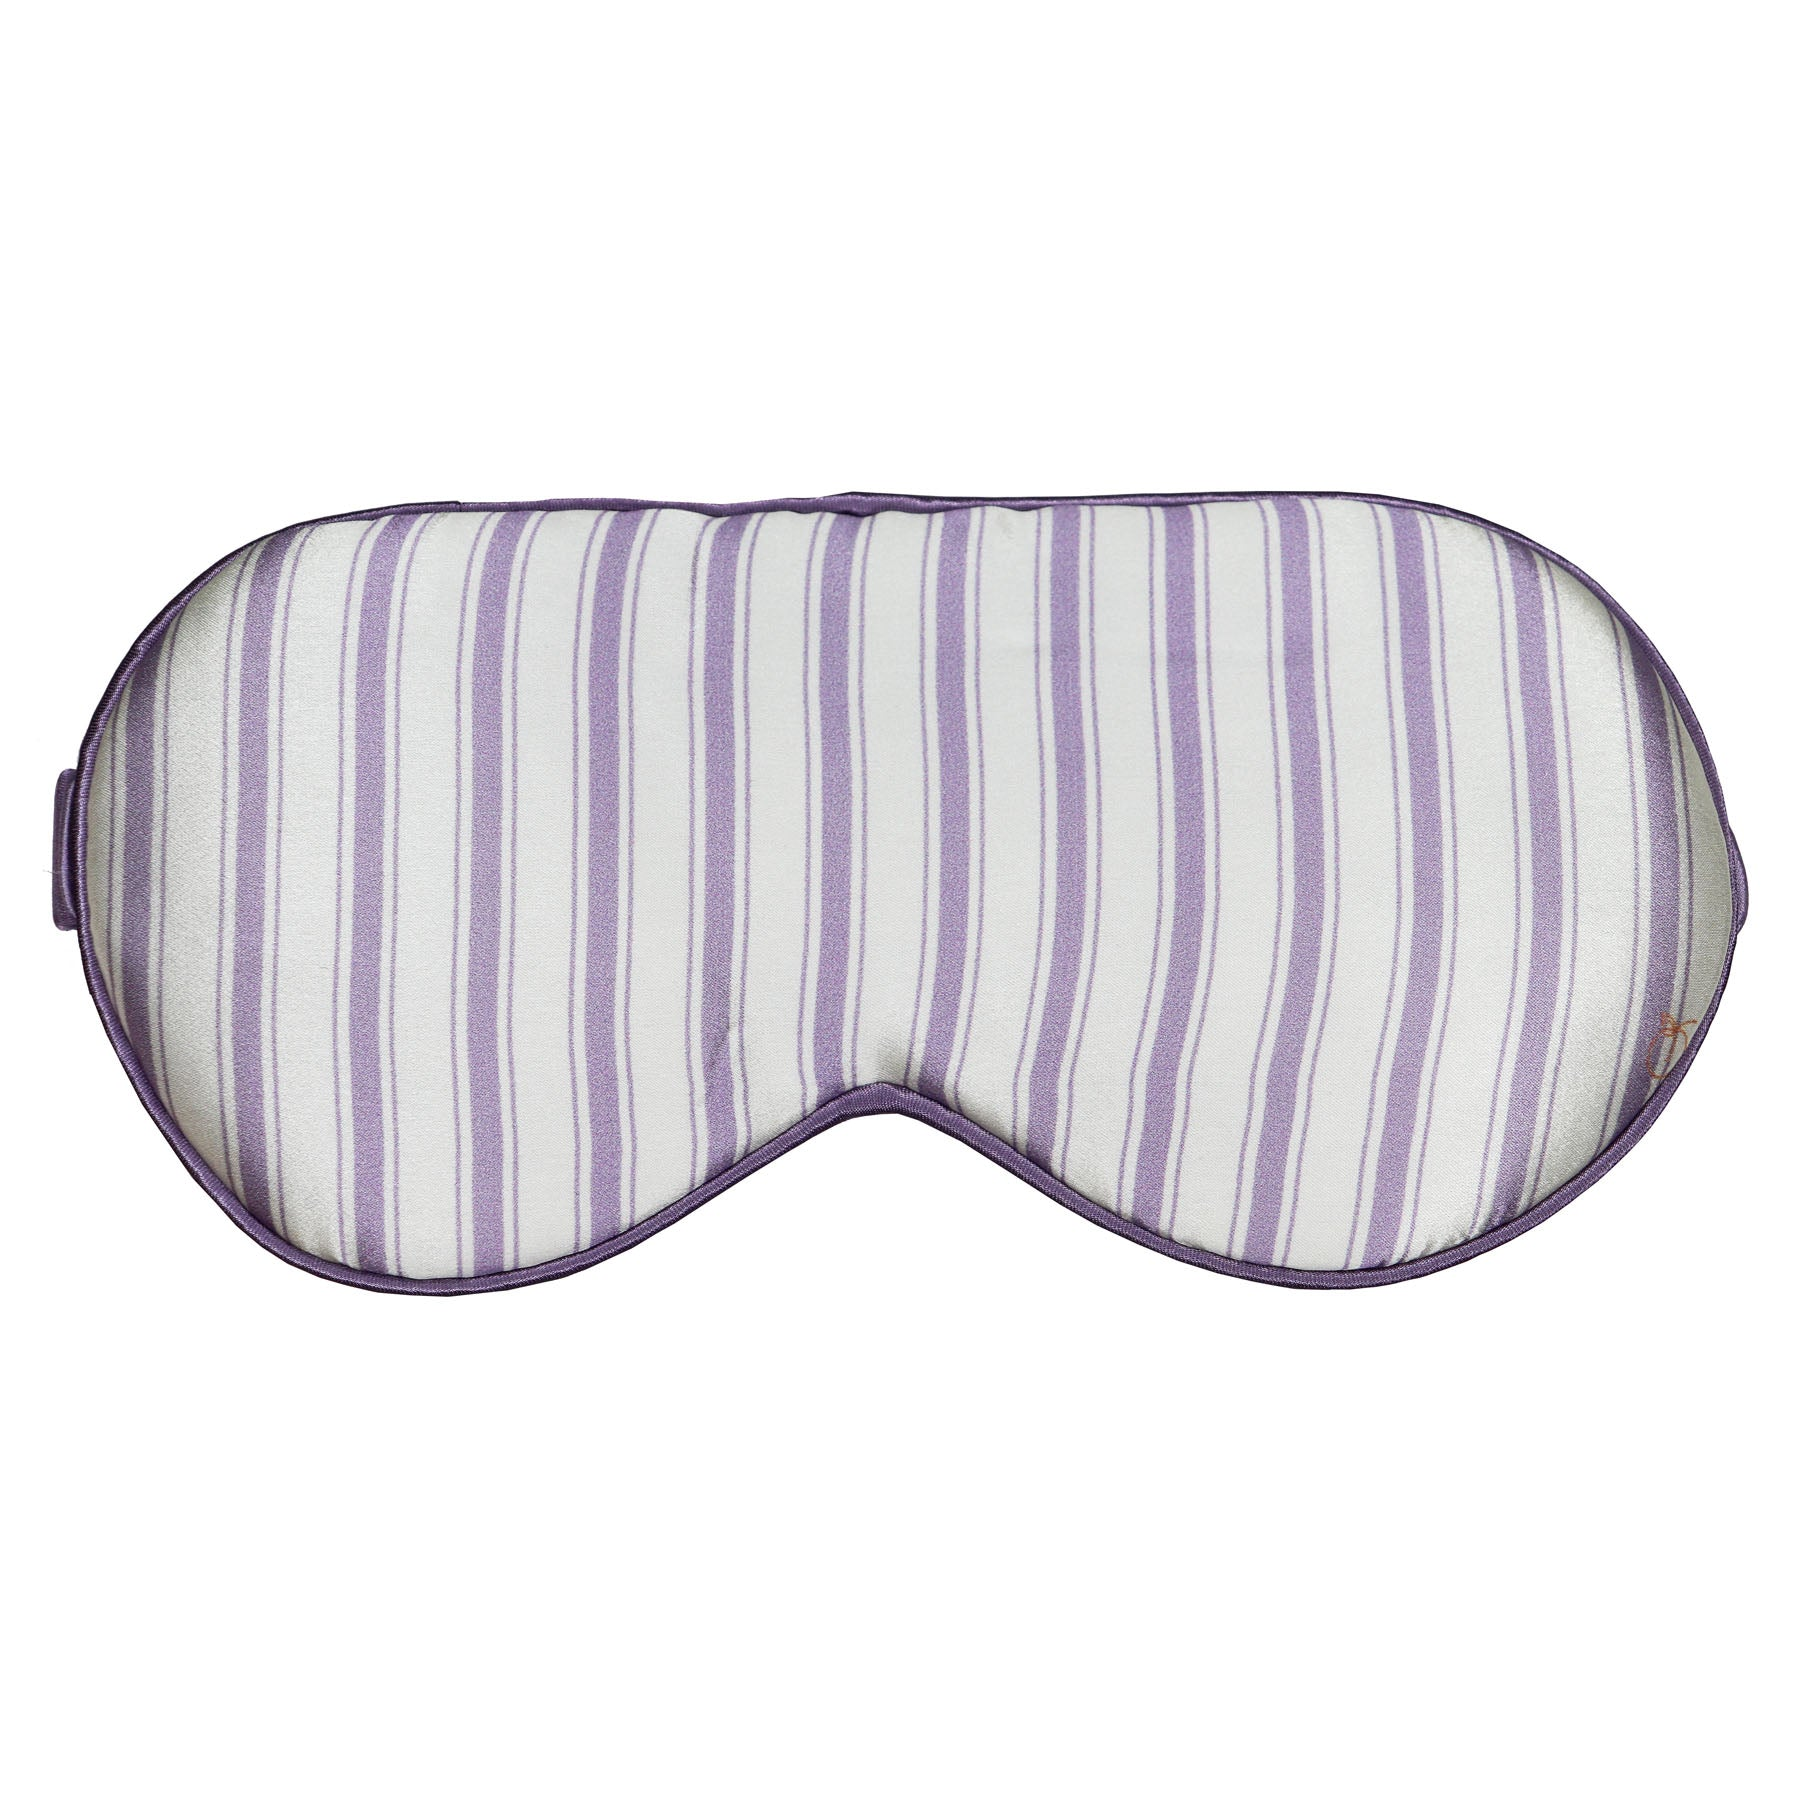 *Perfectly Imperfect* Lilac - I Got Stripes Silk Sleep Eye Mask